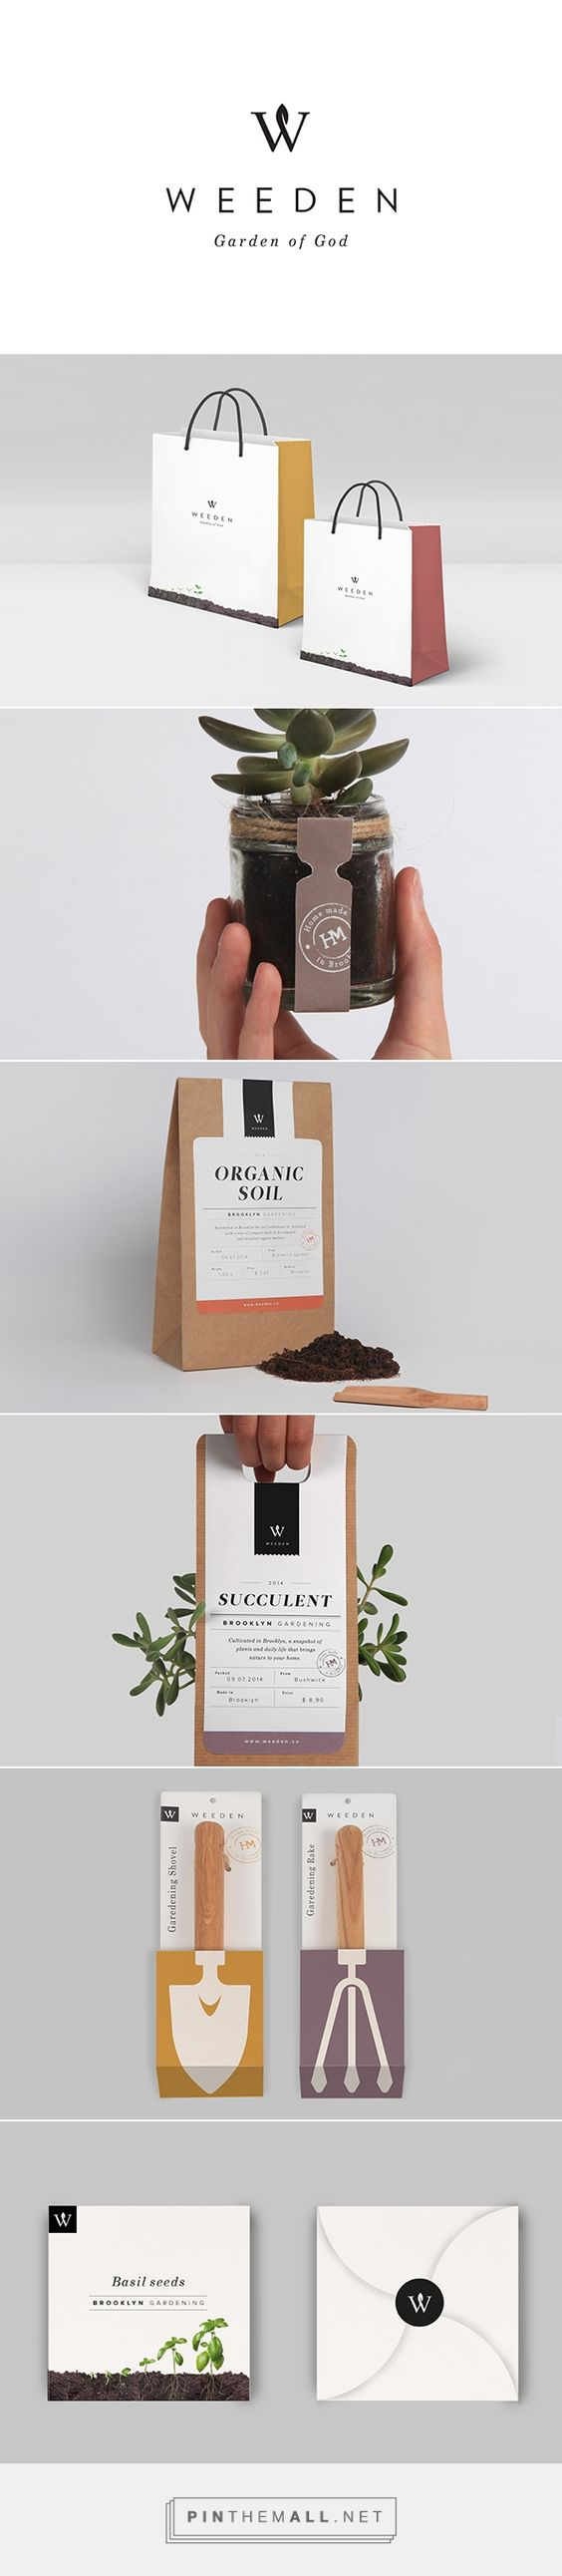 "Weeden packaging branding on Behance by Florence Libbrecht curated by Packaging Diva PD. A Brooklyn based brand of ""inside gardening"" looking for creating and owning terrariums and plants.:"